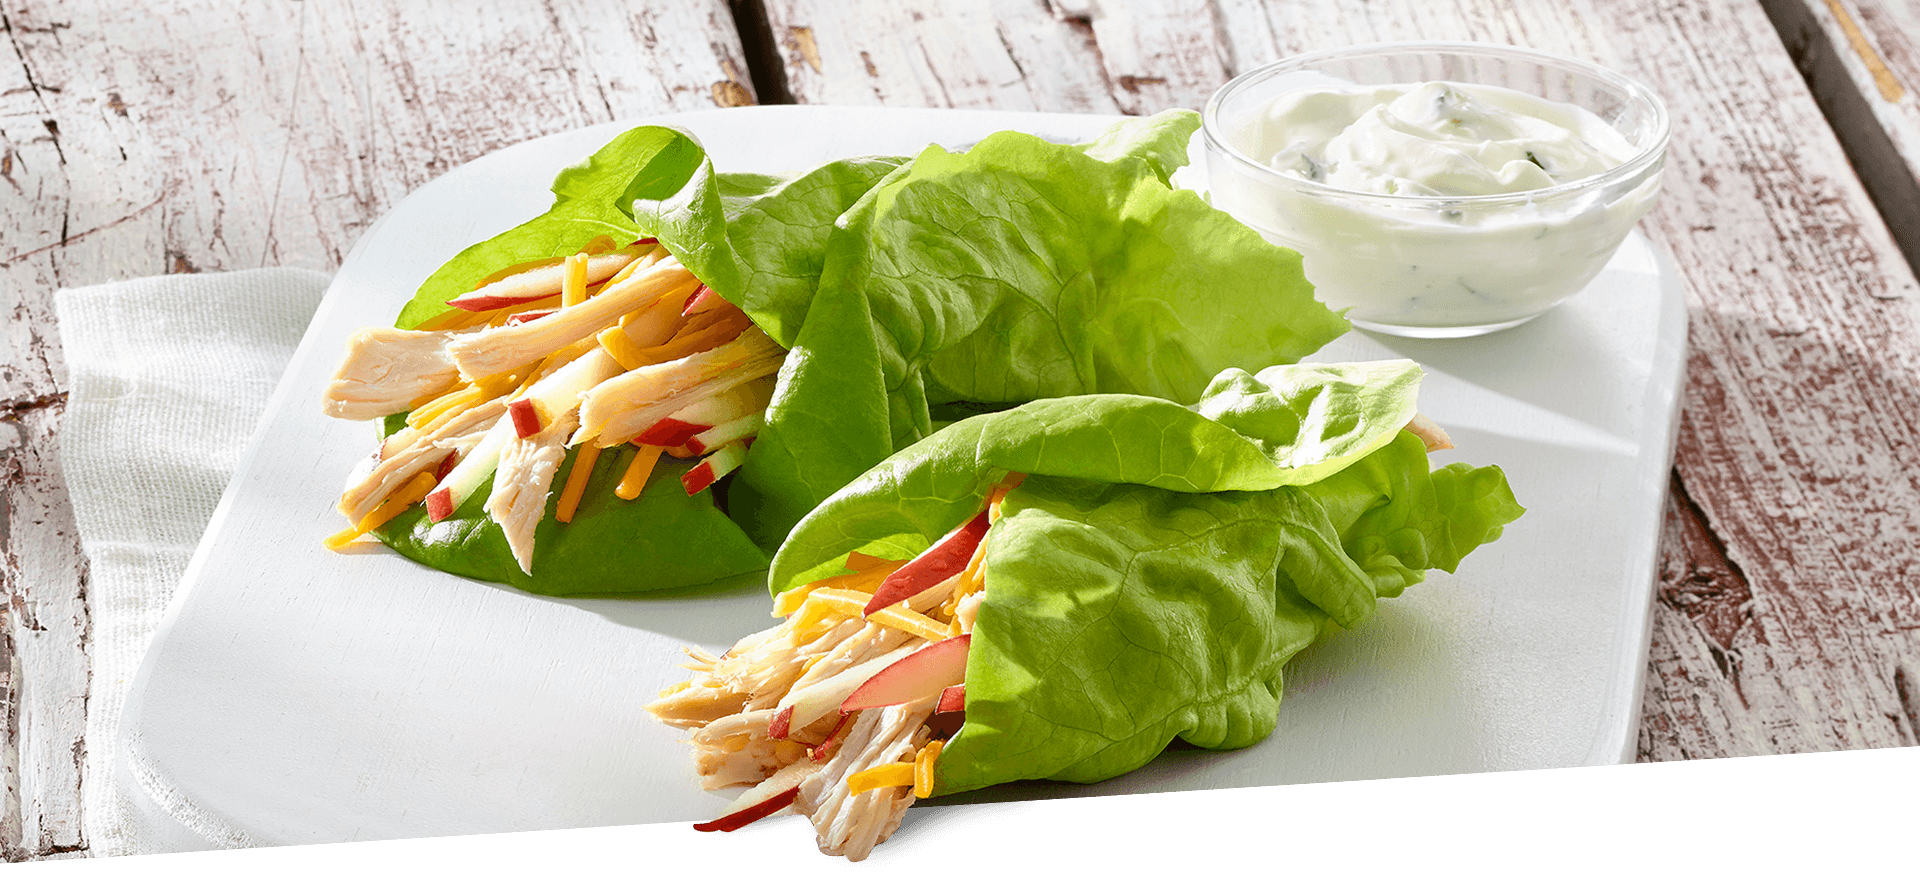 Chicken Lettuce Wrap header BG